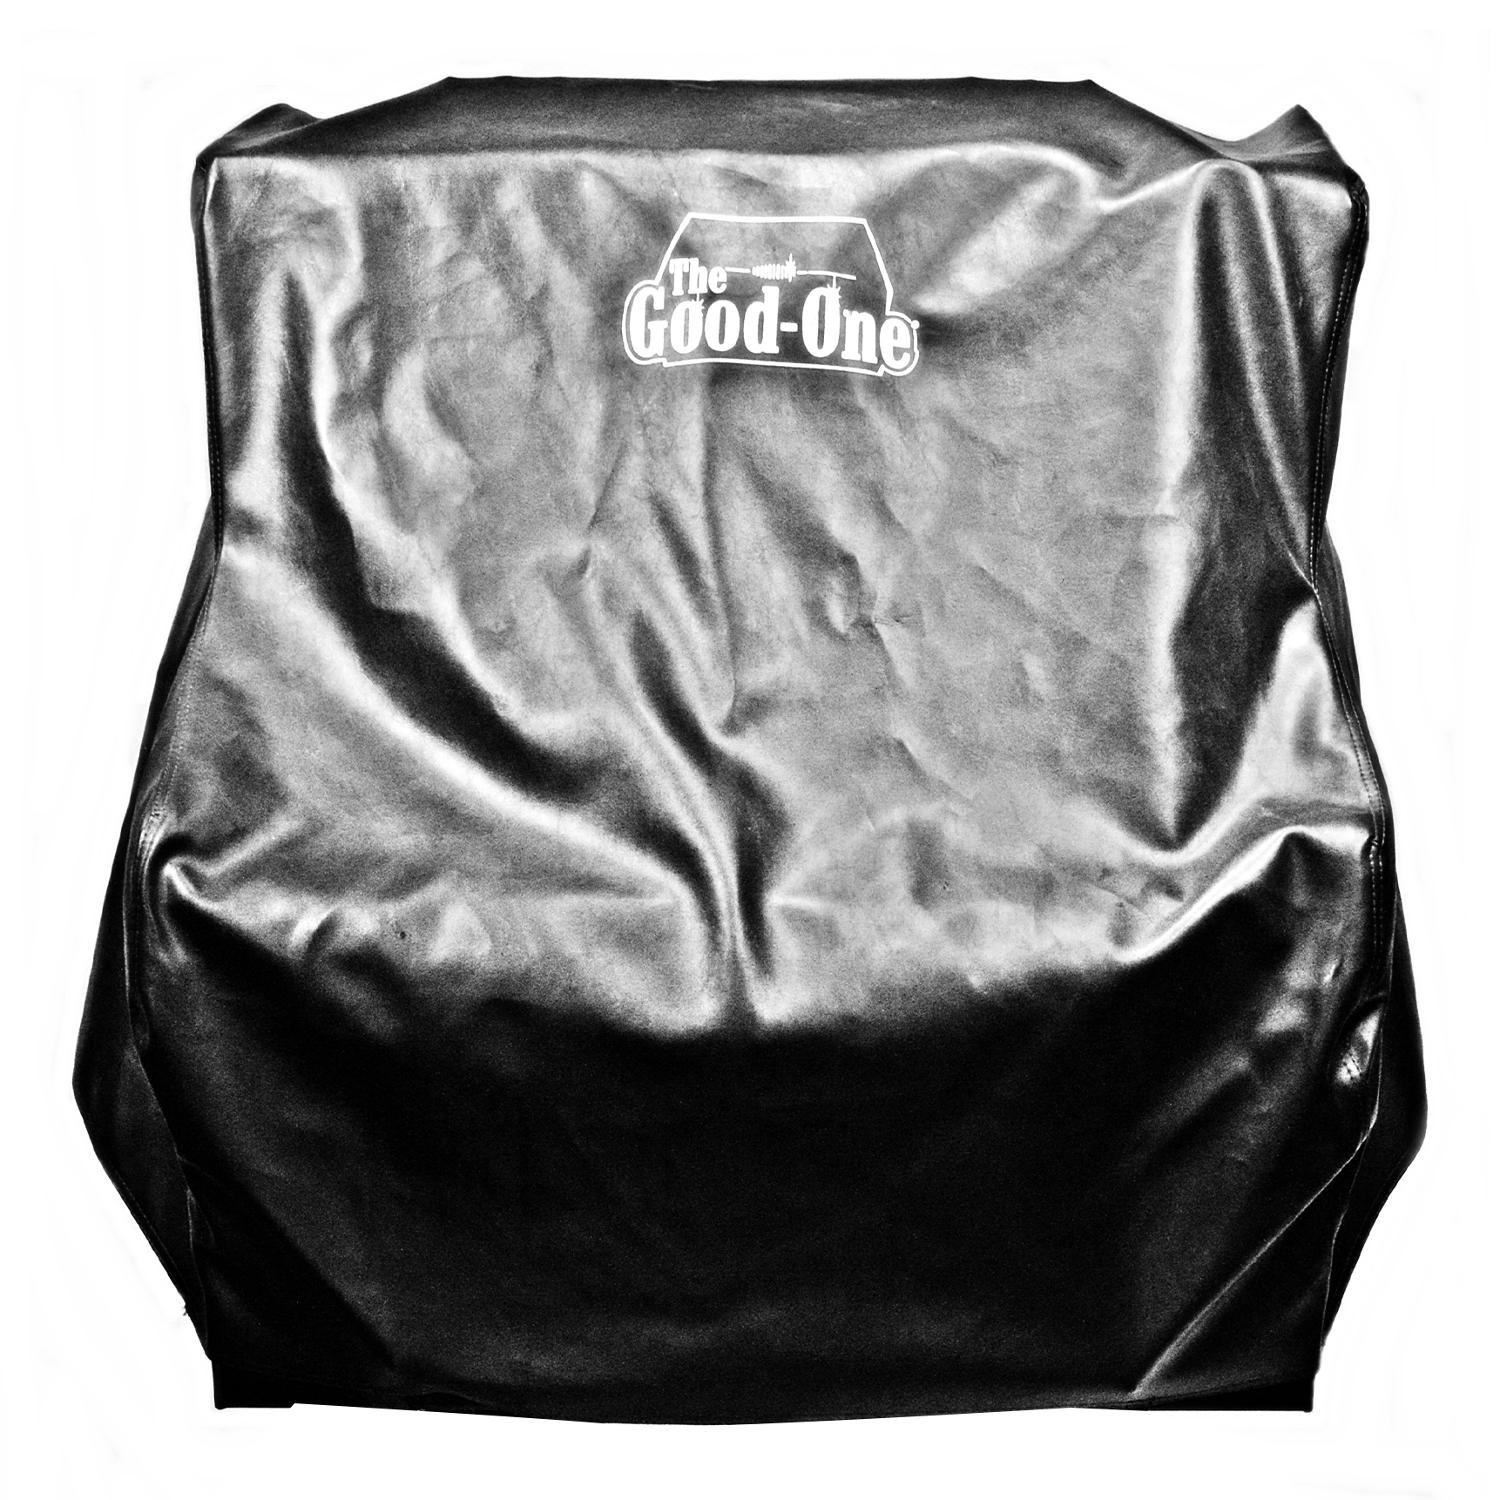 The Good-One Heritage Oven Gen III 32-Inch Charcoal Smoker Cover